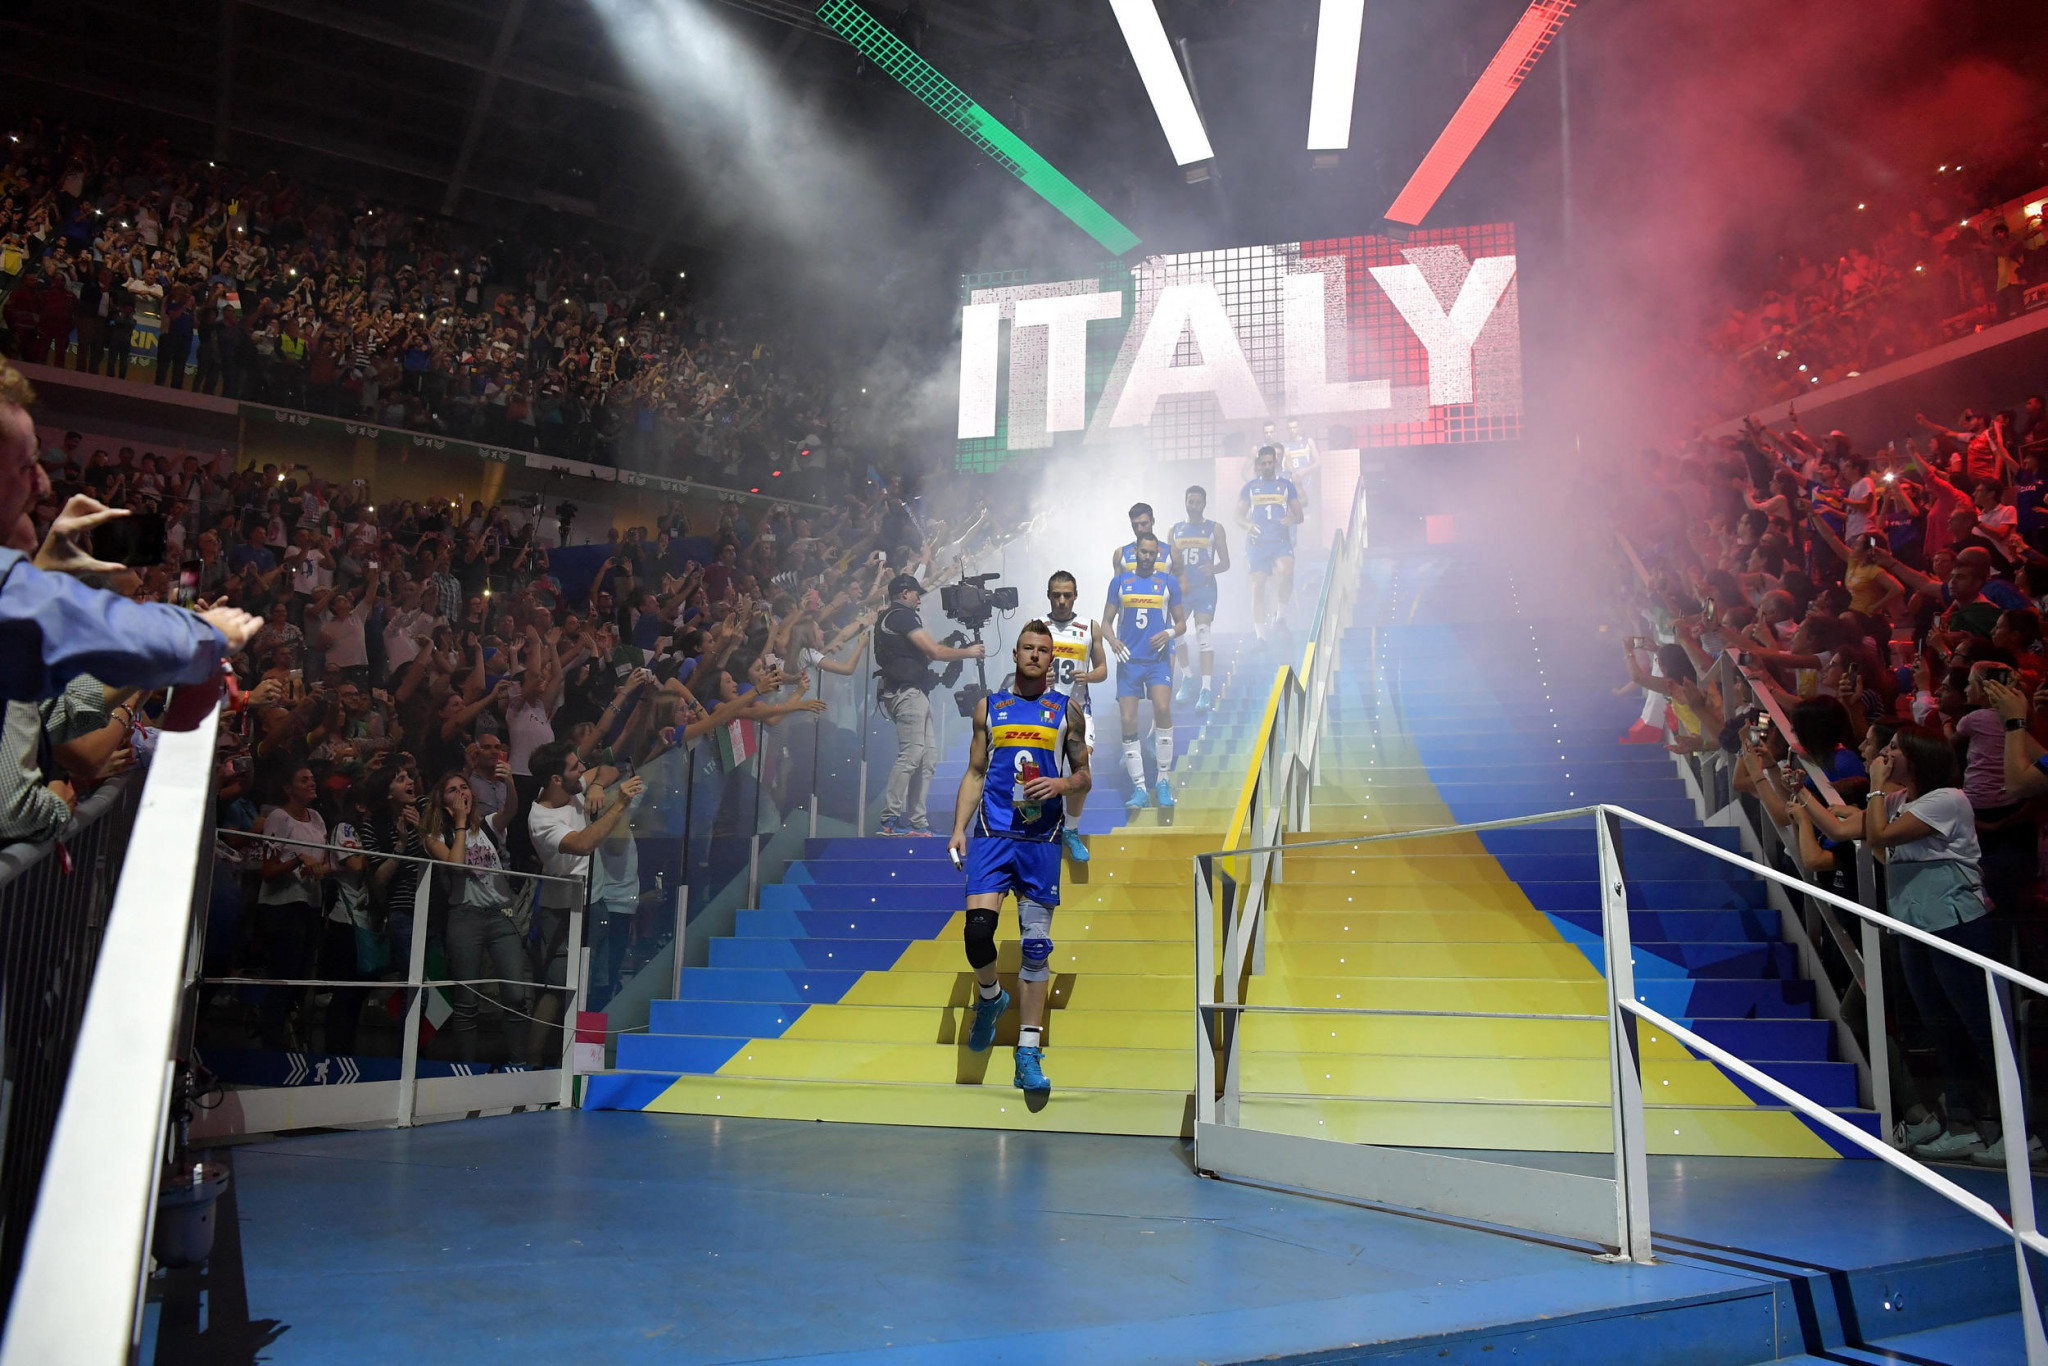 Turin to host 2020 Volleyball Nations League men's finals